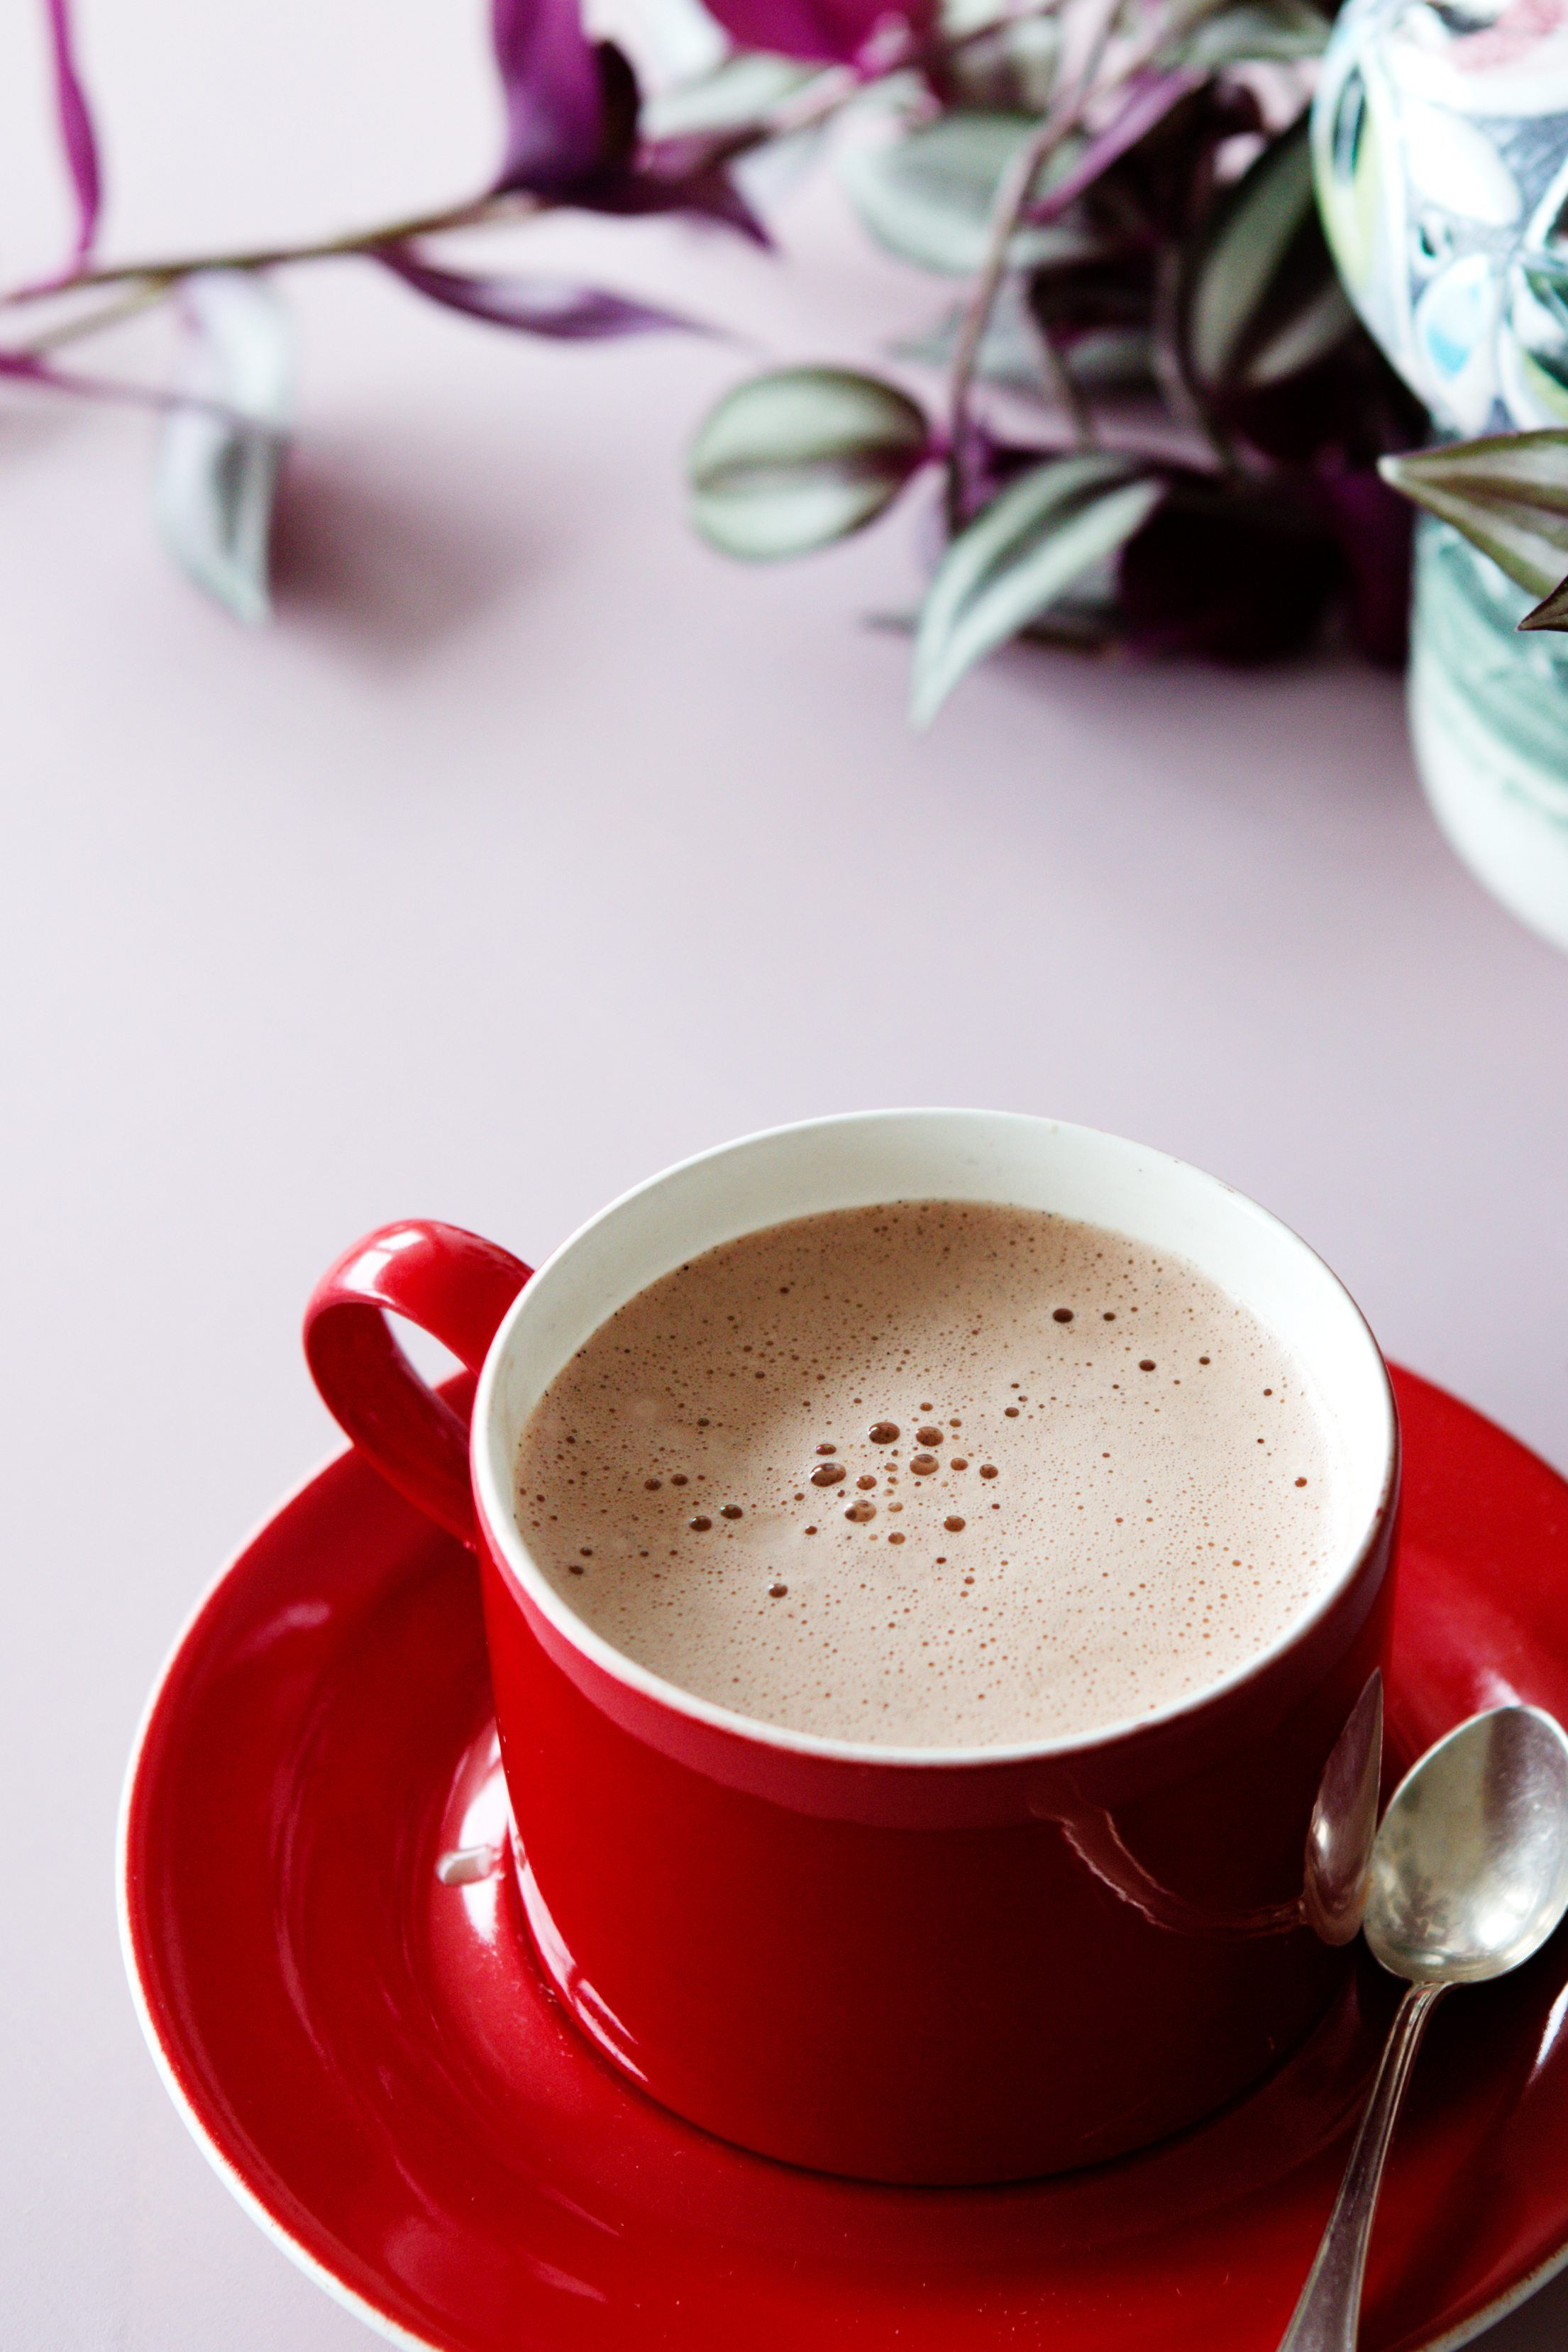 This hot chocolate drink is perfect for the colder months when you need something creamy and delicious to keep you warm.